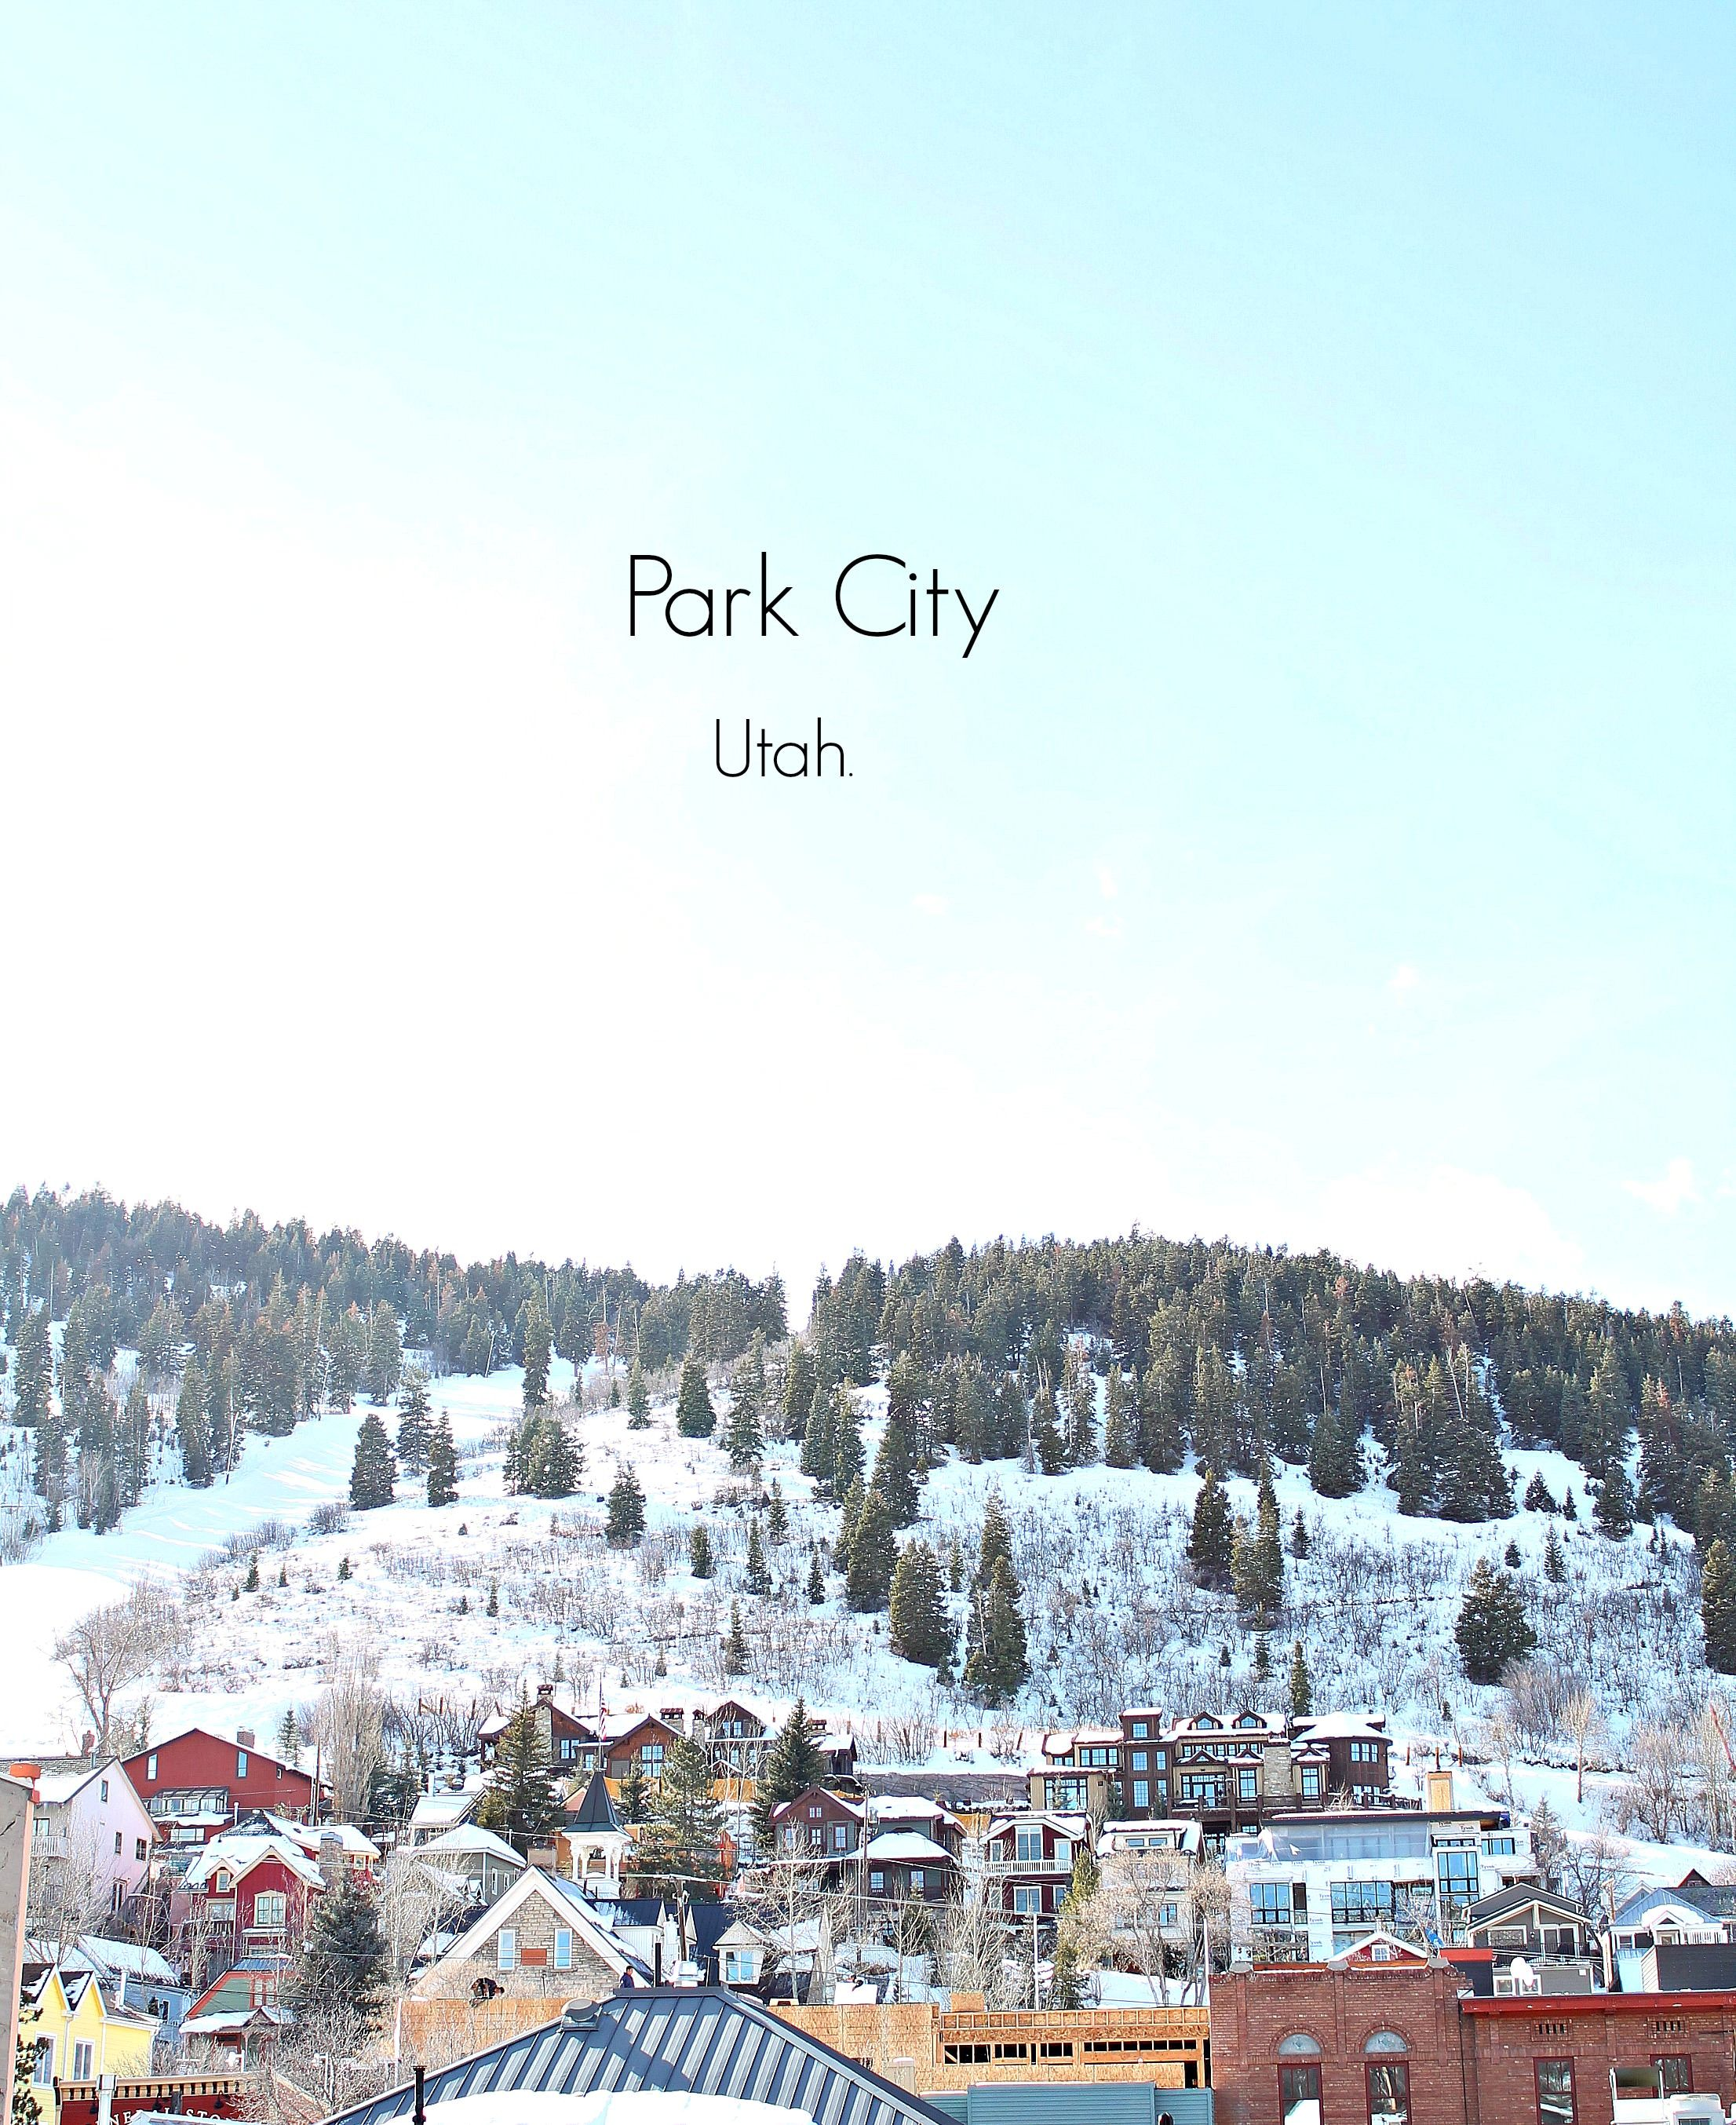 Park City In Utah A Beautiful Place To Ski Shop And Eat Cities In Utah Vacation Trips Park City Utah